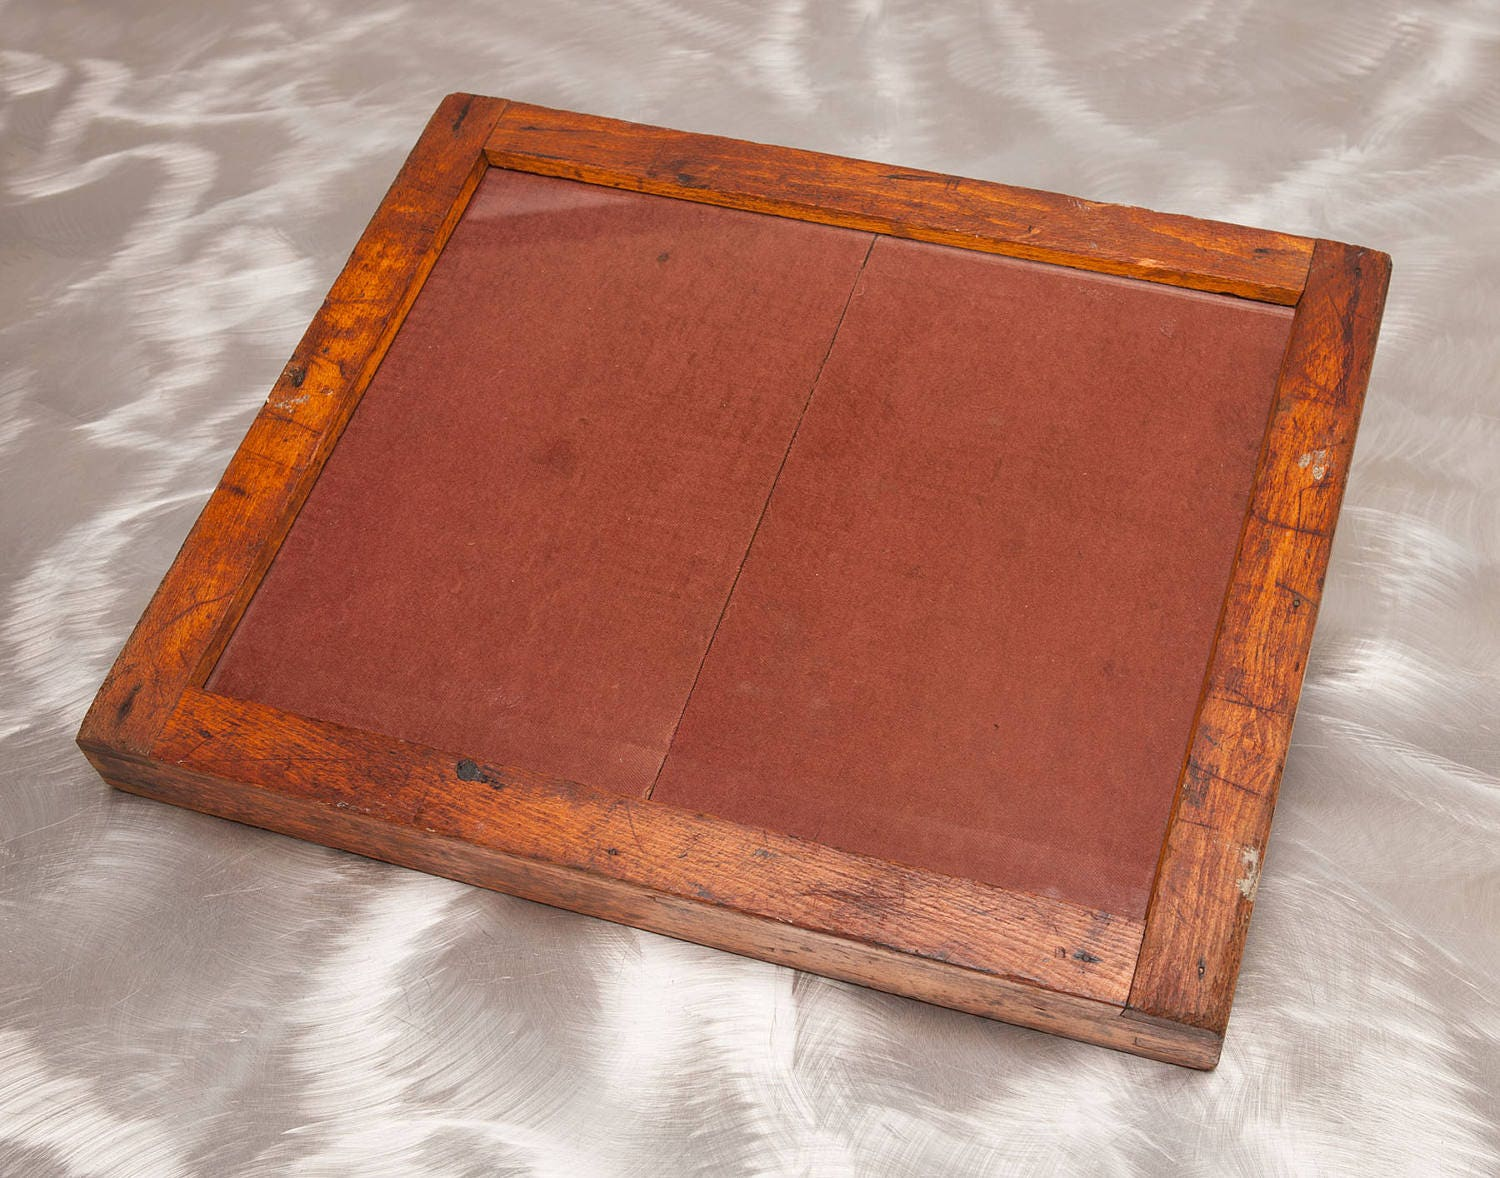 Vintage 1890\'s Wood Contact Printing Frame - CENTURY - Large 11x14 ...